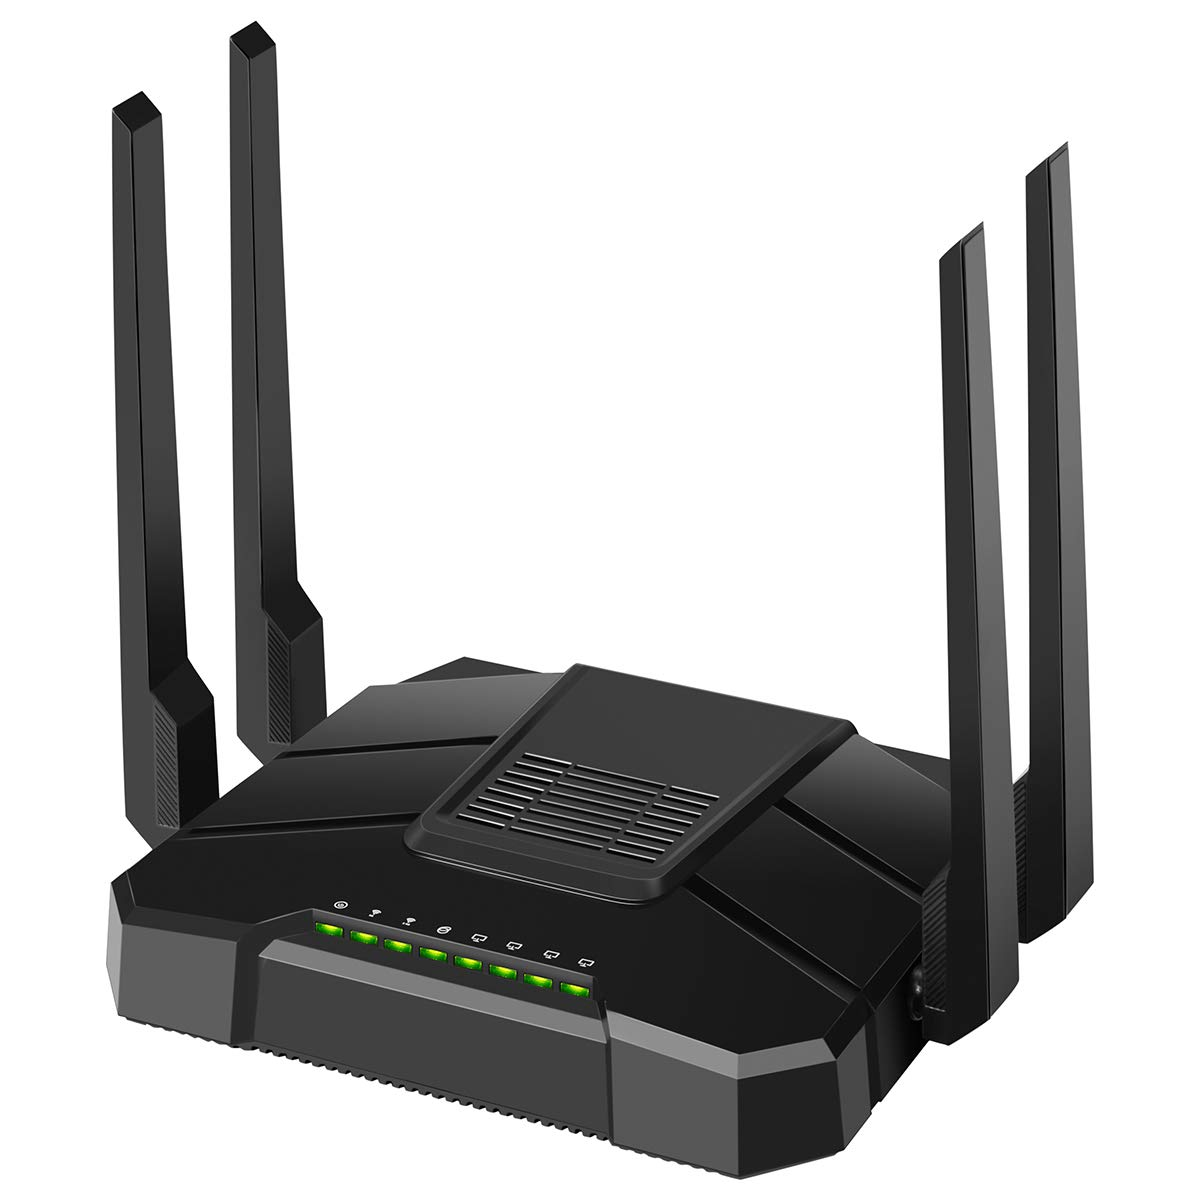 【2019 Upgraded】 Smart WiFi Router AC1200 Dual Band Gigabit Router High Speed Wireless Internet Router with USB 2.0 & SD Card Ports for Home Office Gaming by Flow.month